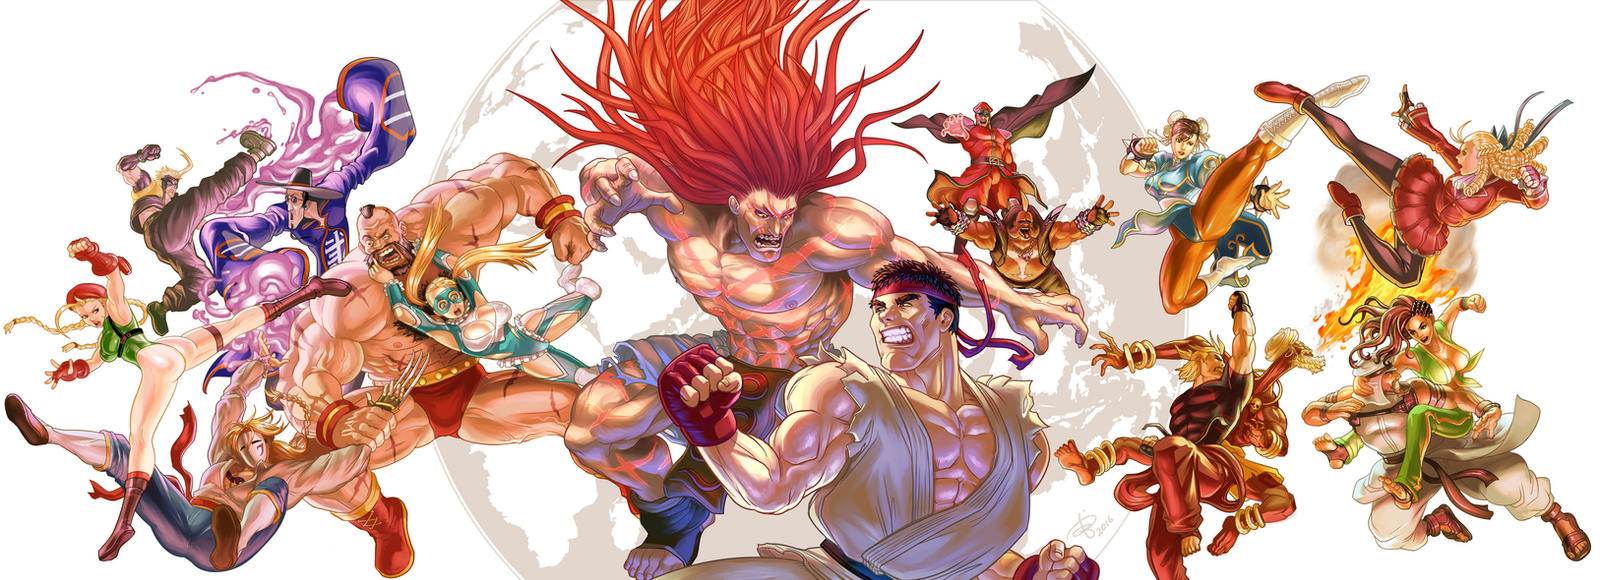 Street Fighter V by BenjaminAng